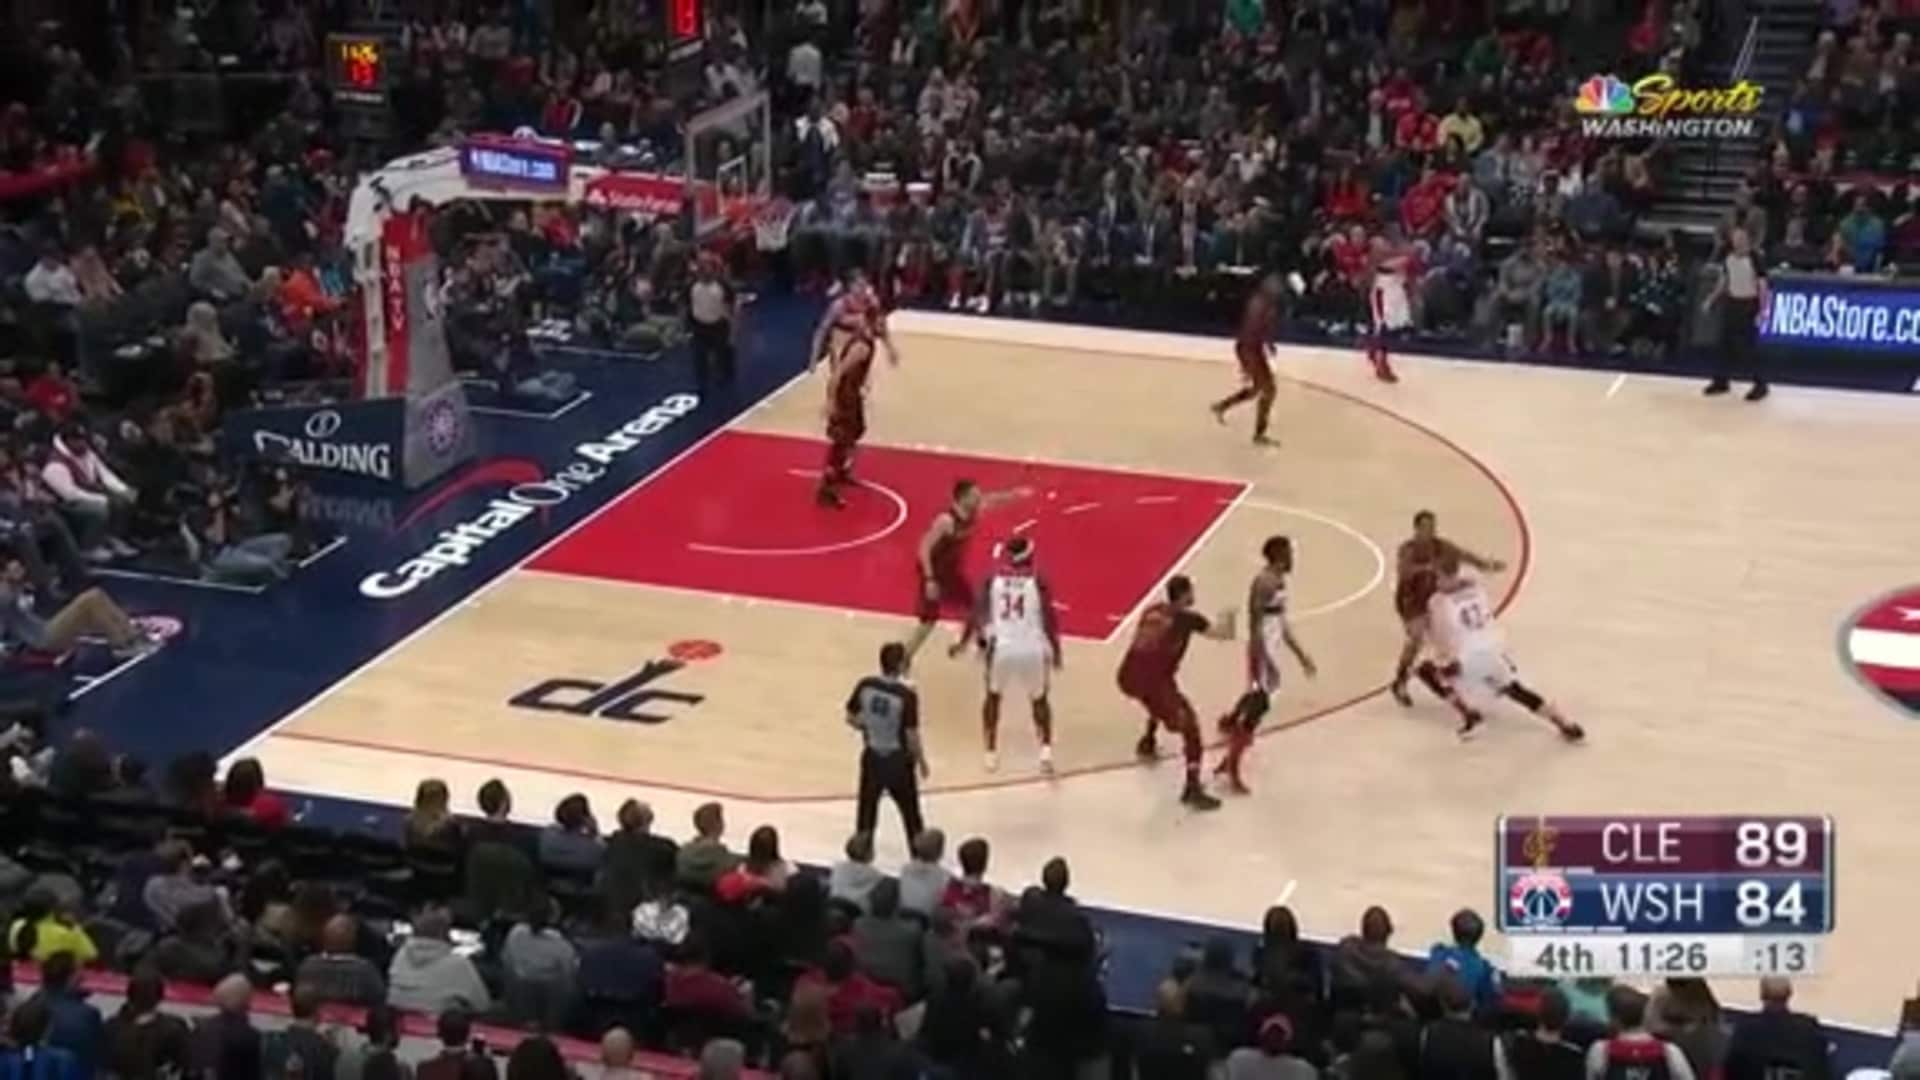 Highlights: Wizards vs. Cavaliers - 11/8/19